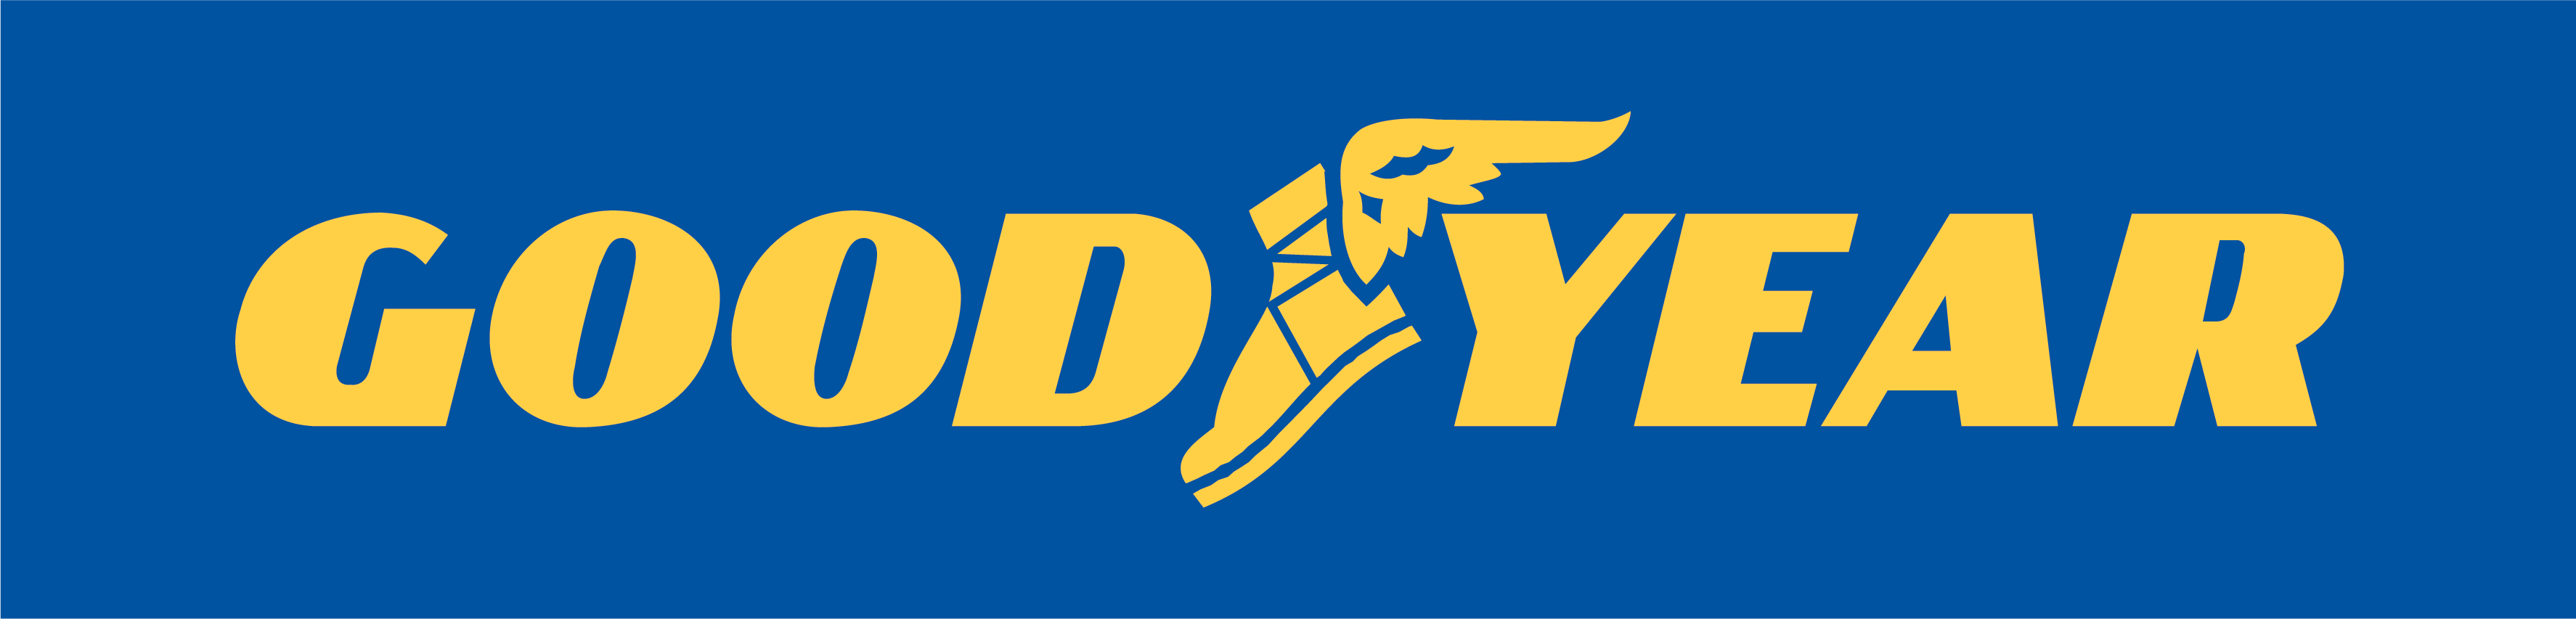 https://clubeabtyres.pt/wp-content/uploads/2020/01/goodyear-1.png